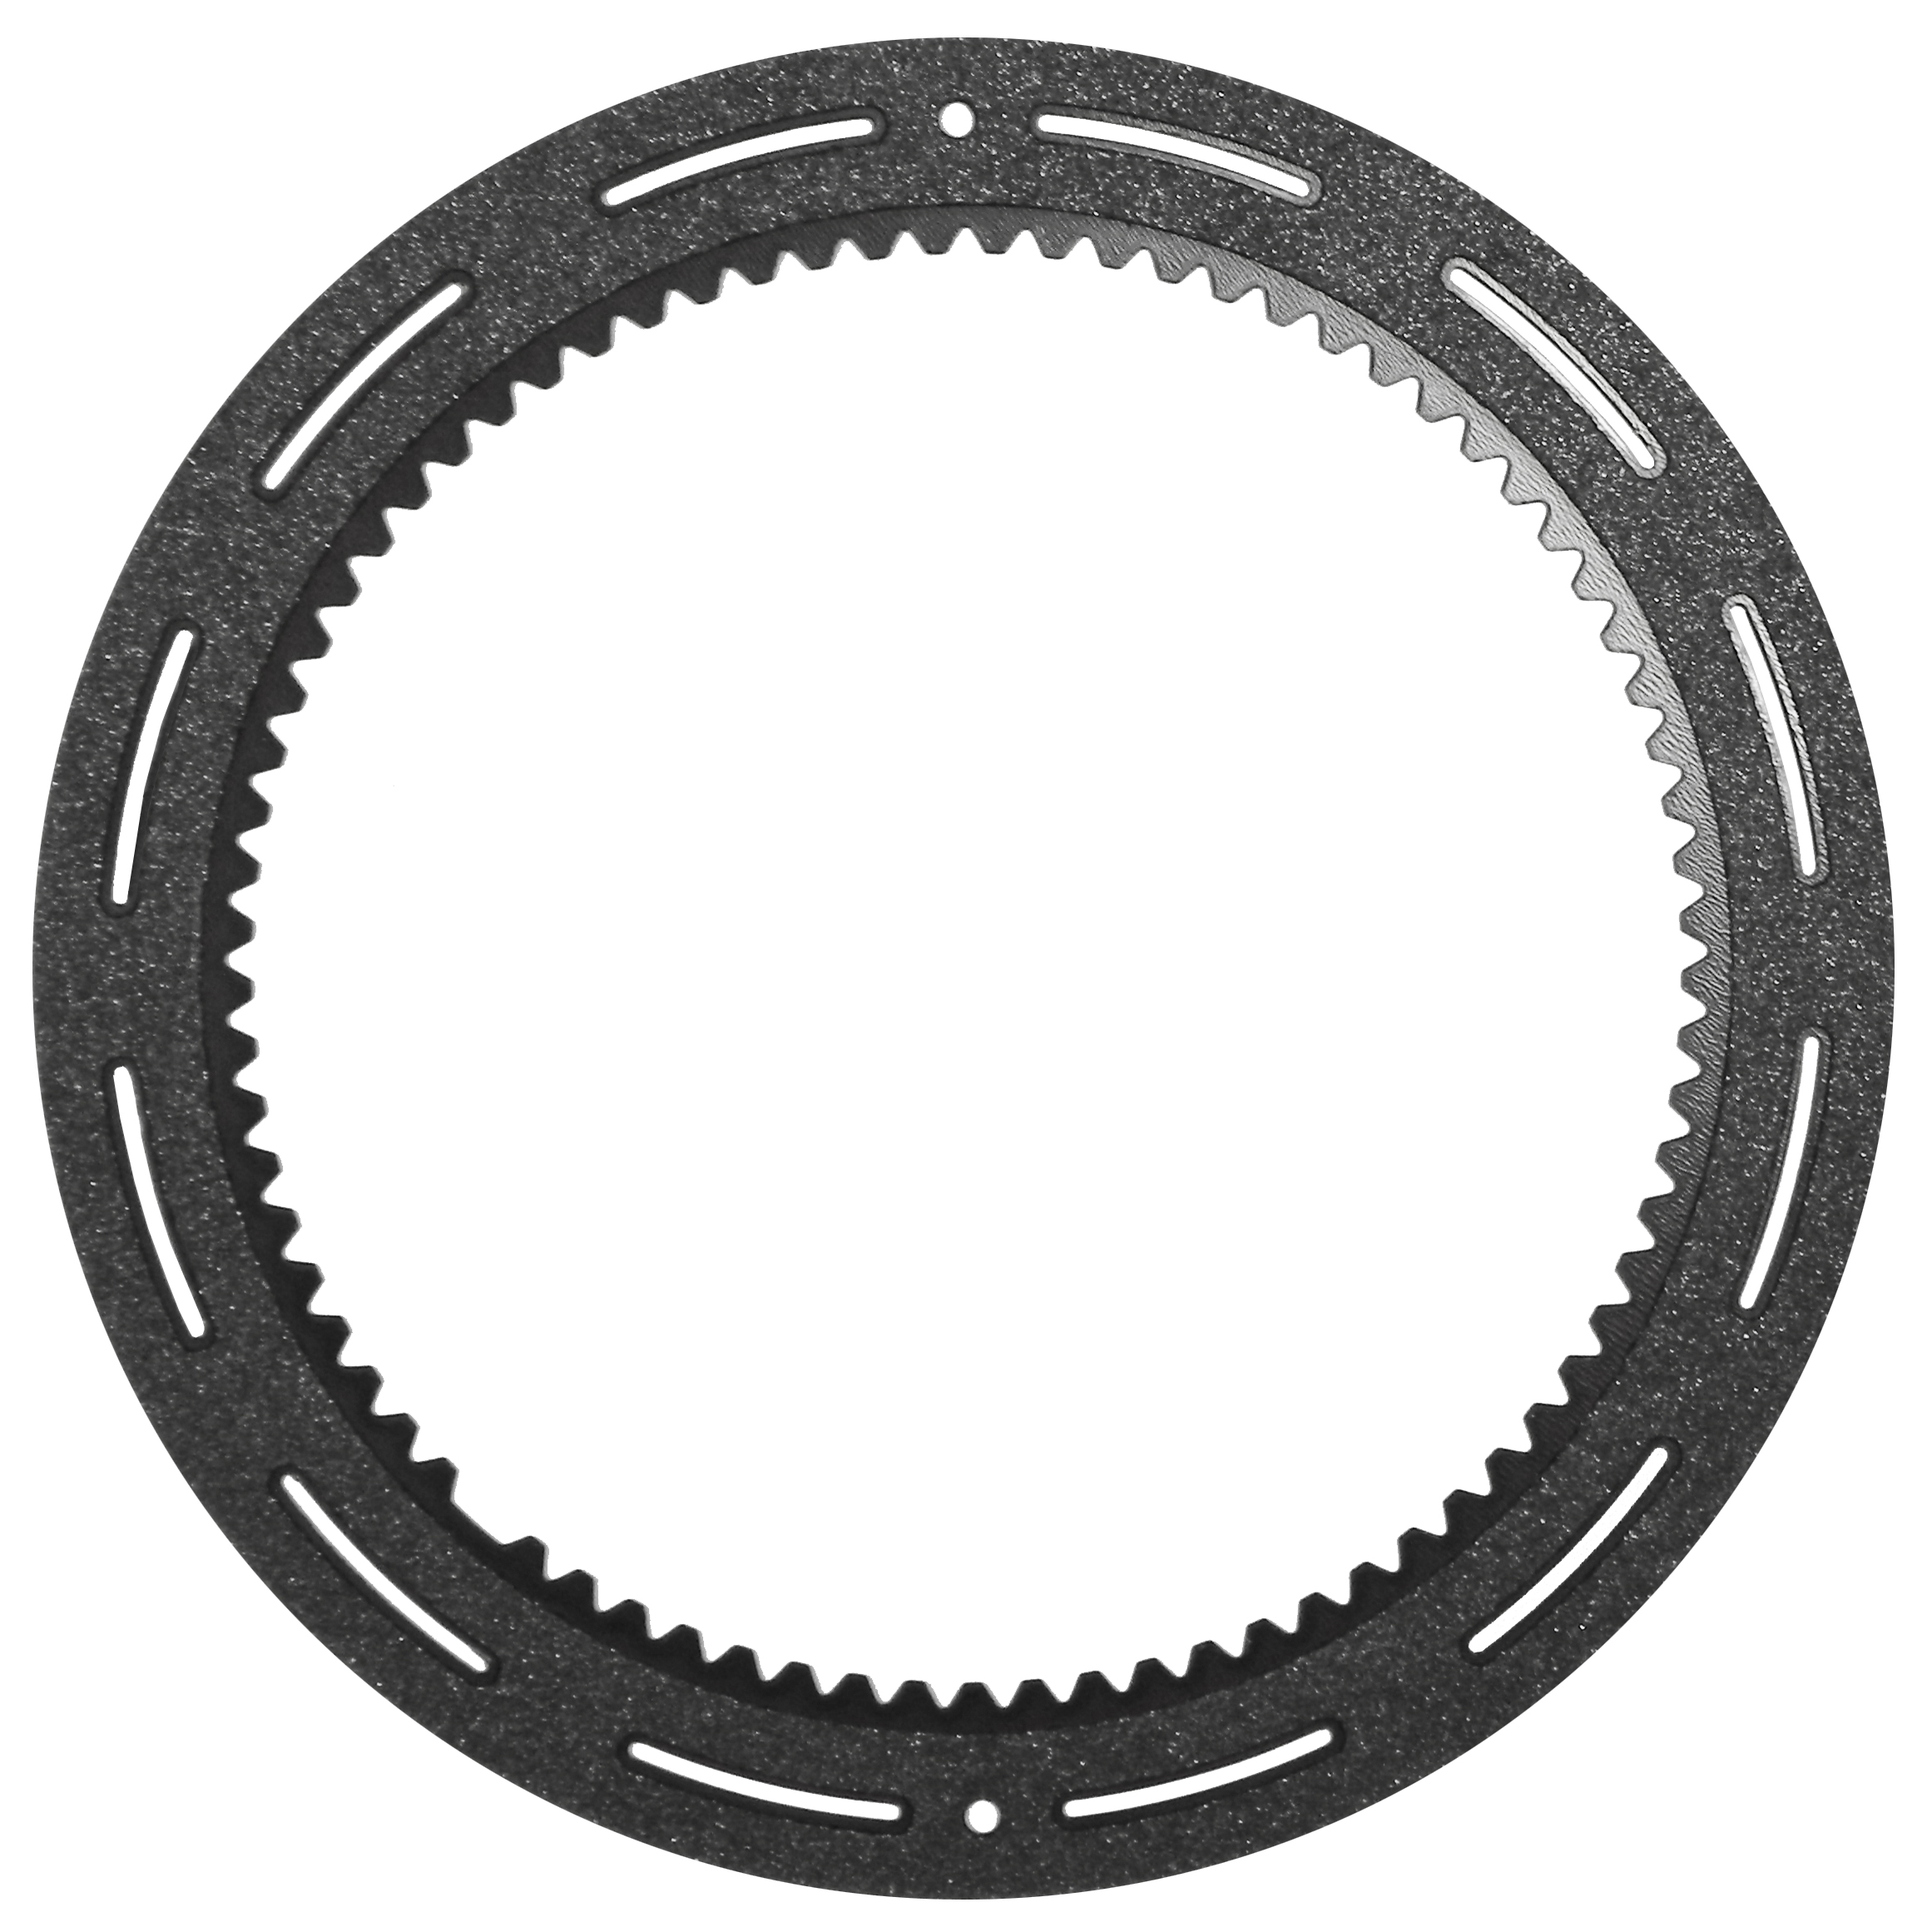 R810655 | 1995-ON Friction Clutch Plate OE Replacement C3, C4